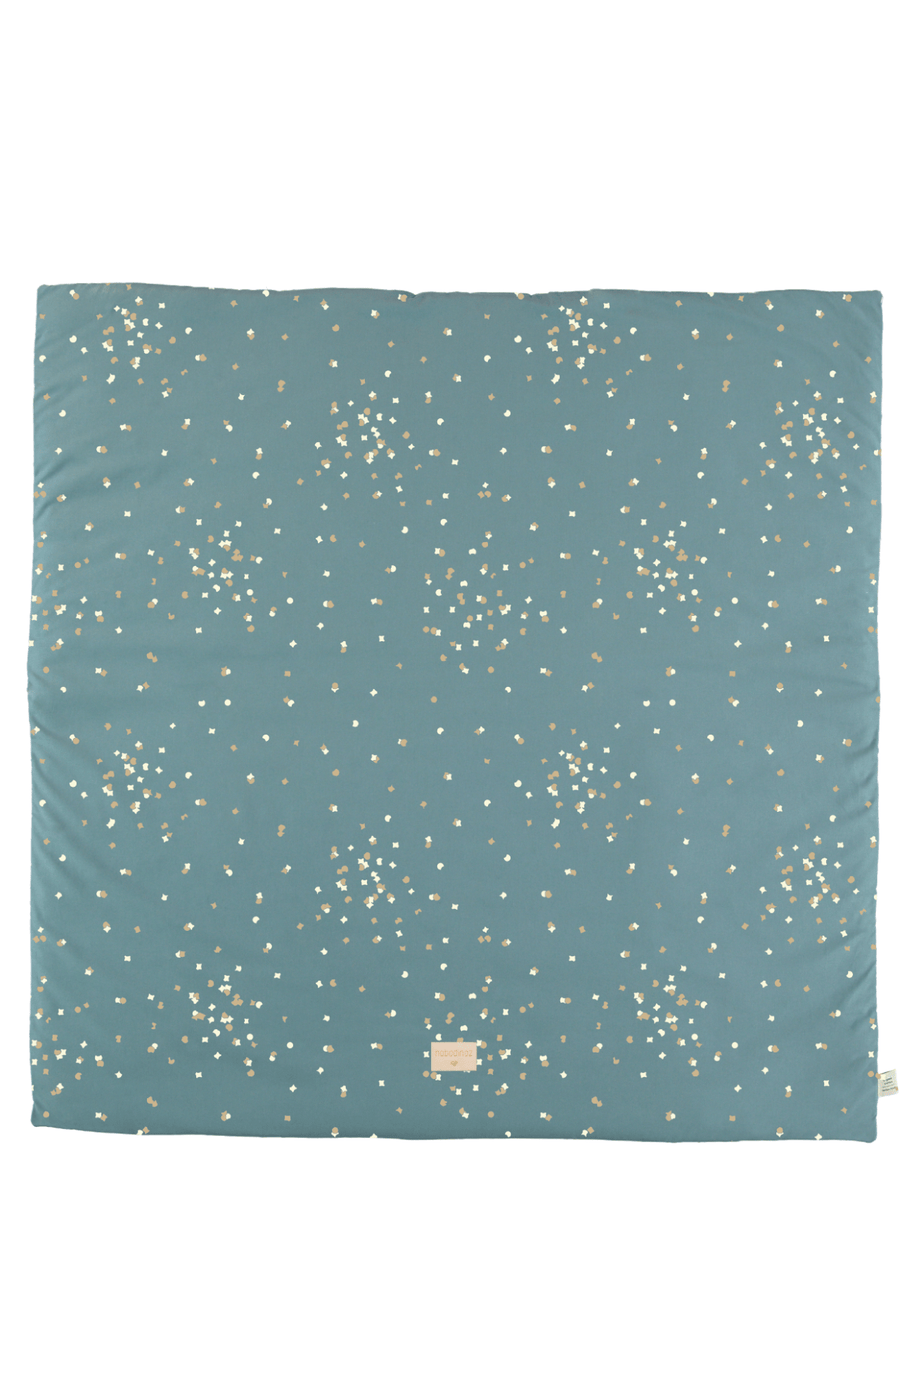 Nobodinoz Colorado Square Playmat - Gold Confetti/Magic Green